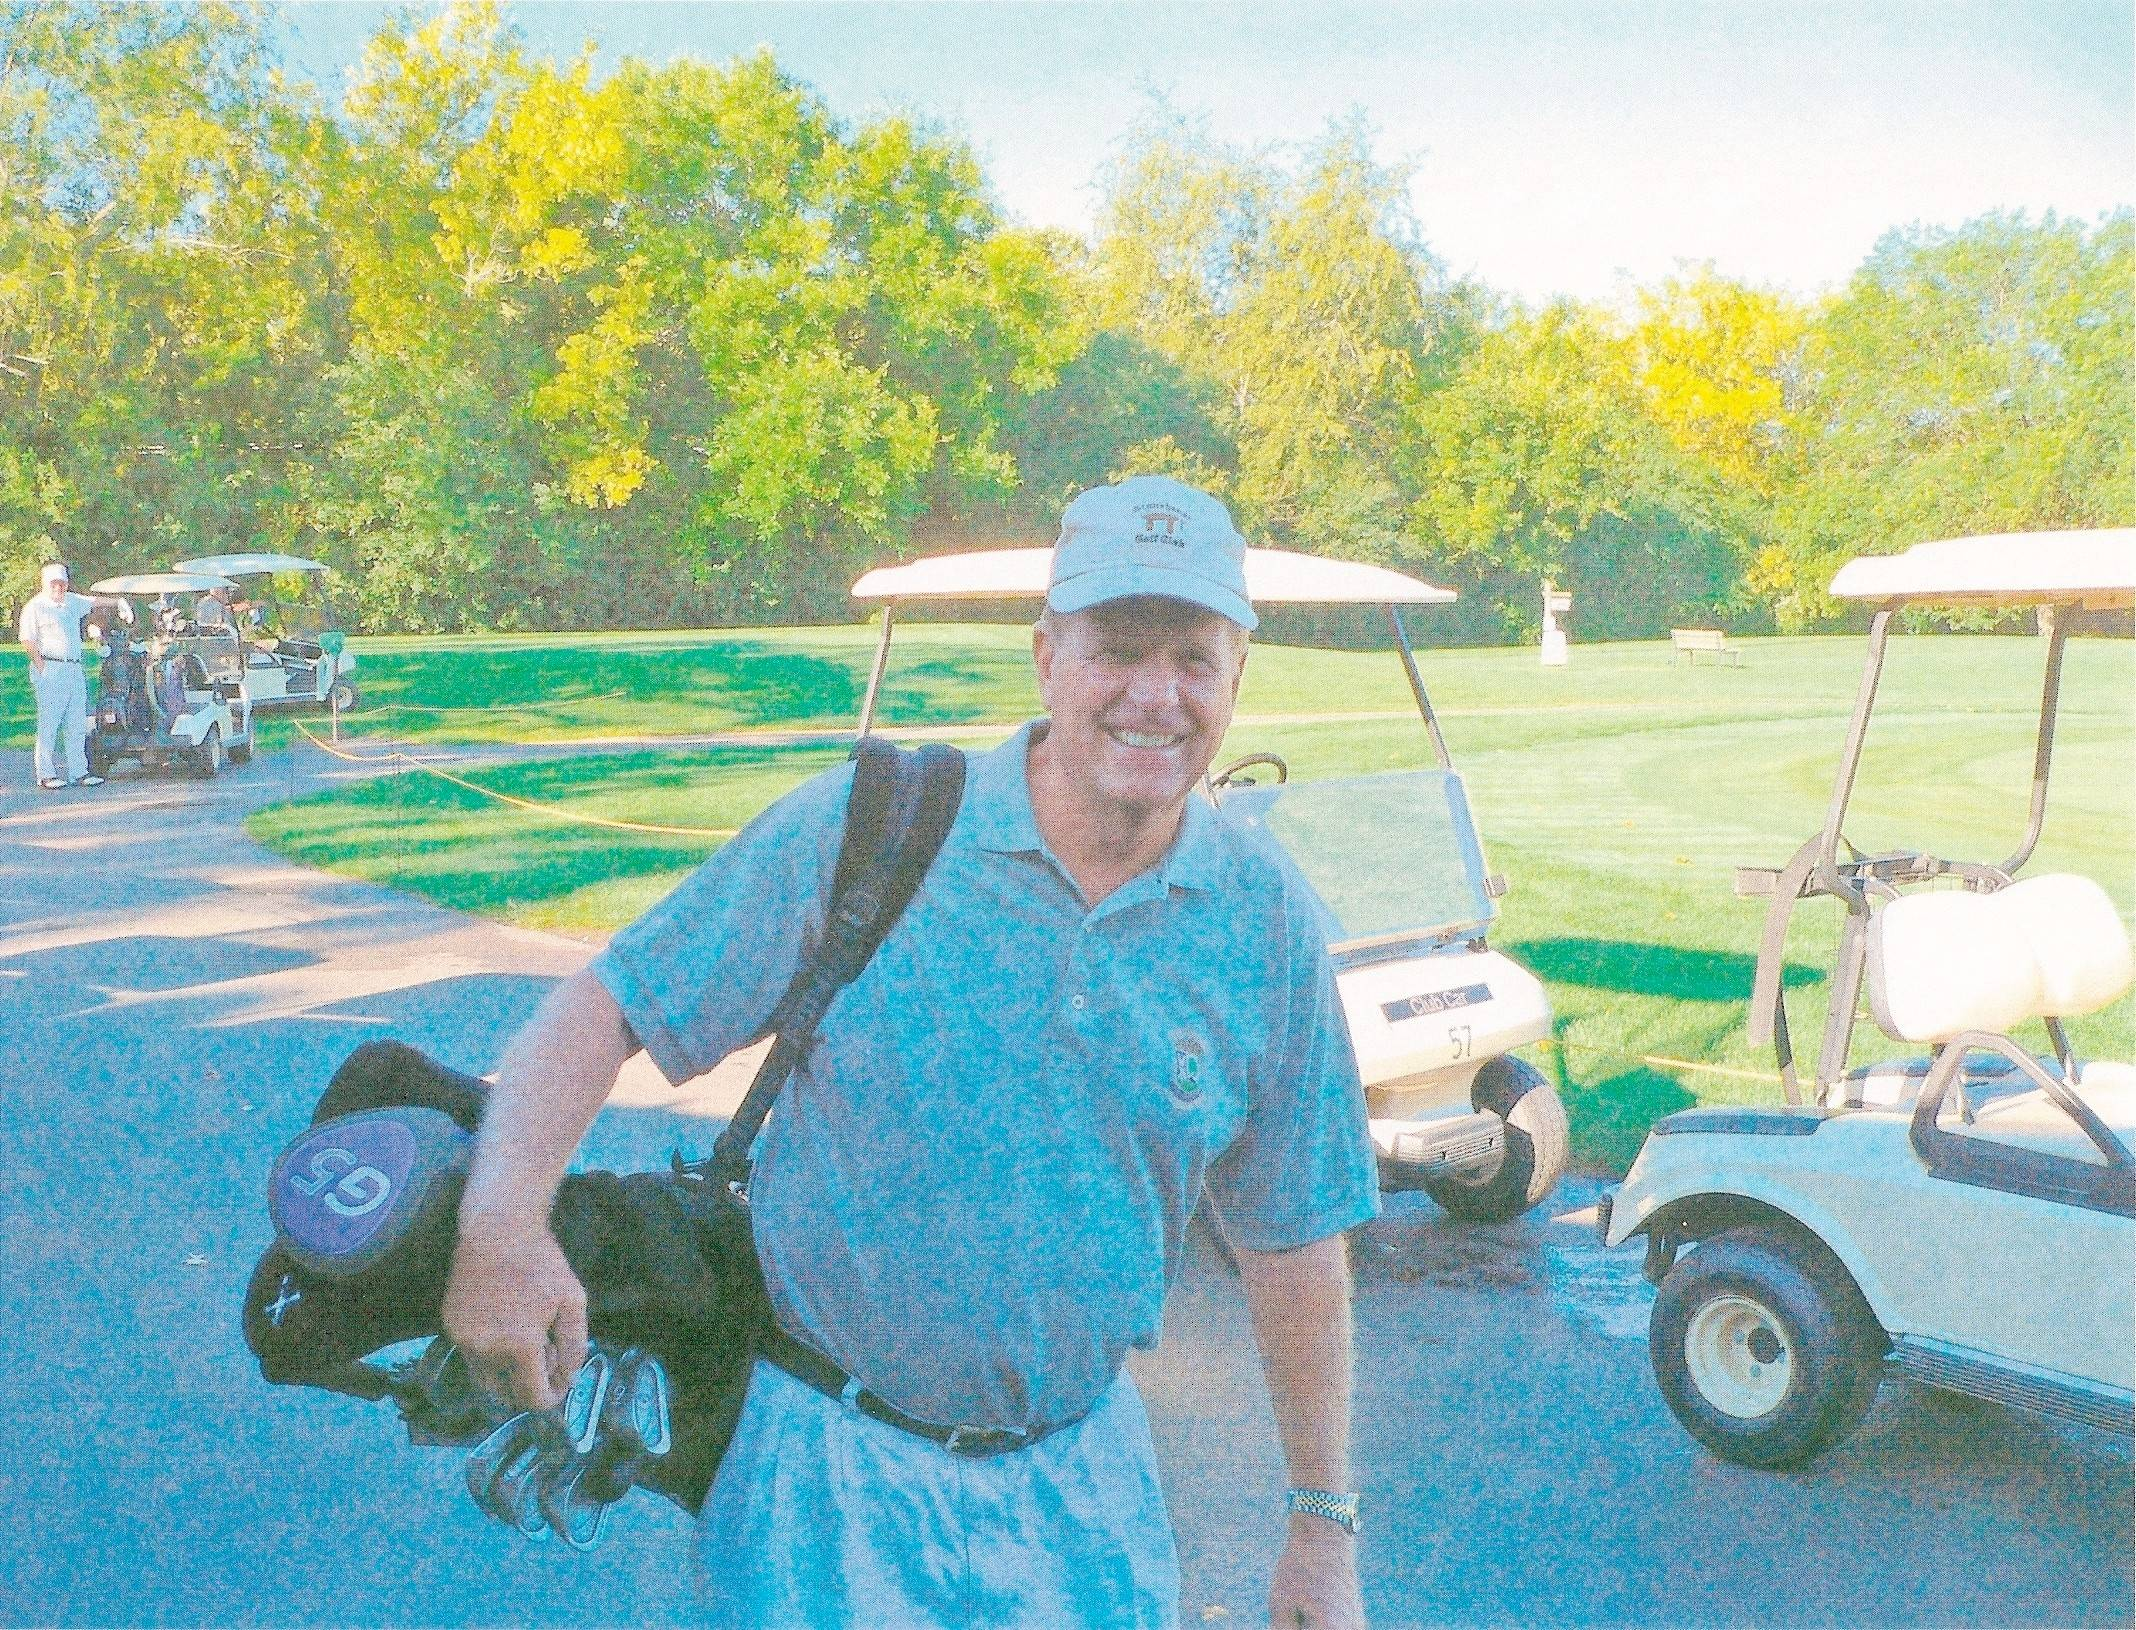 Joe Perica, 70, of Arlington Heights hit holes in one at the Stonehenge Golf Club in Barrington on June 9 and June 16. He has hit four holes in one in his lifetime.